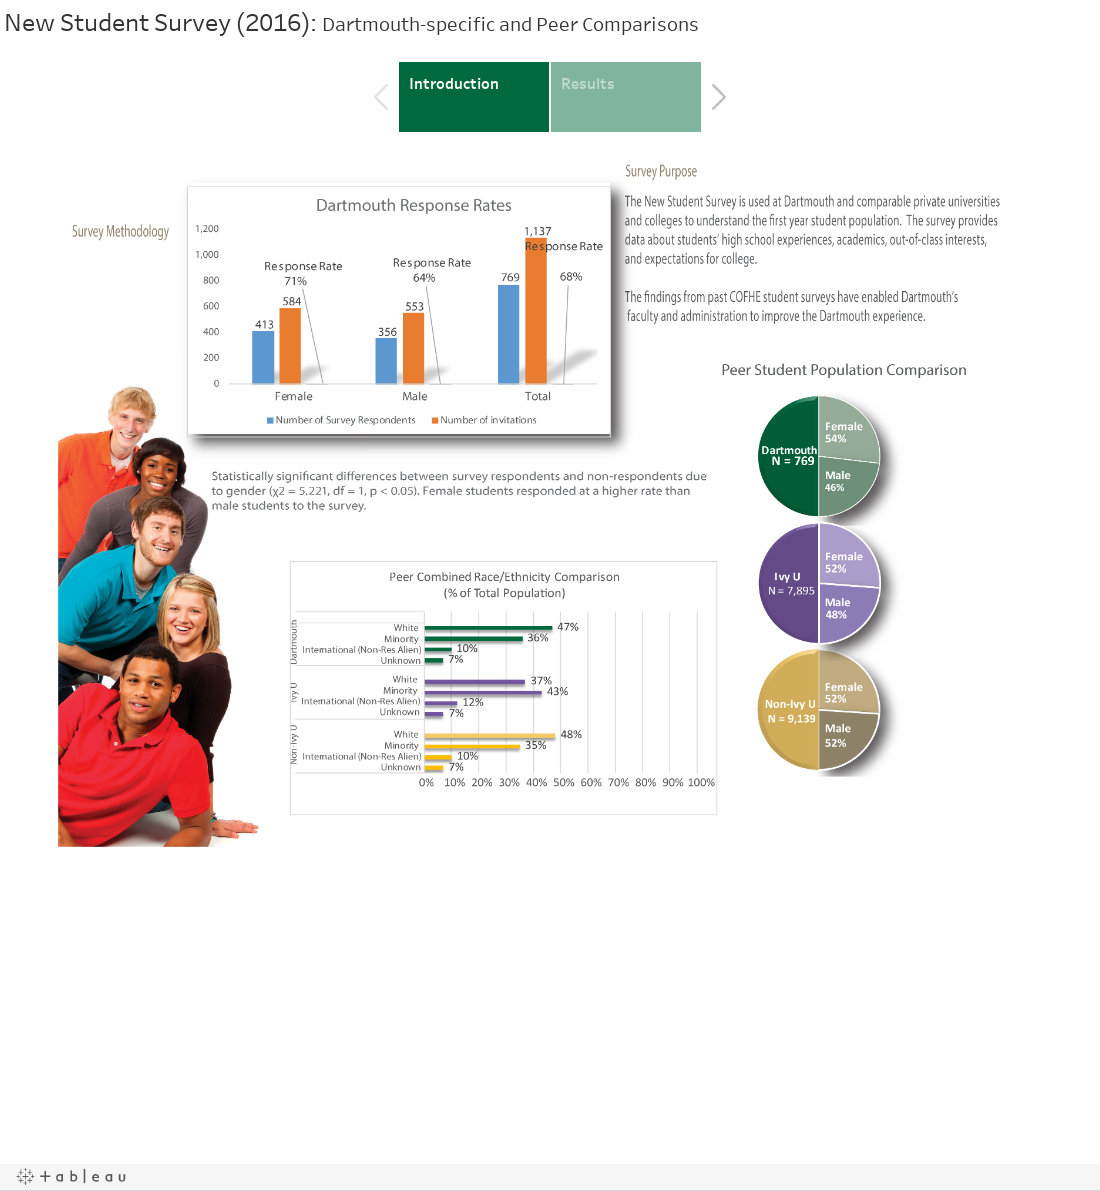 New Student Survey (2016): Dartmouth-specific and Peer Comparisons